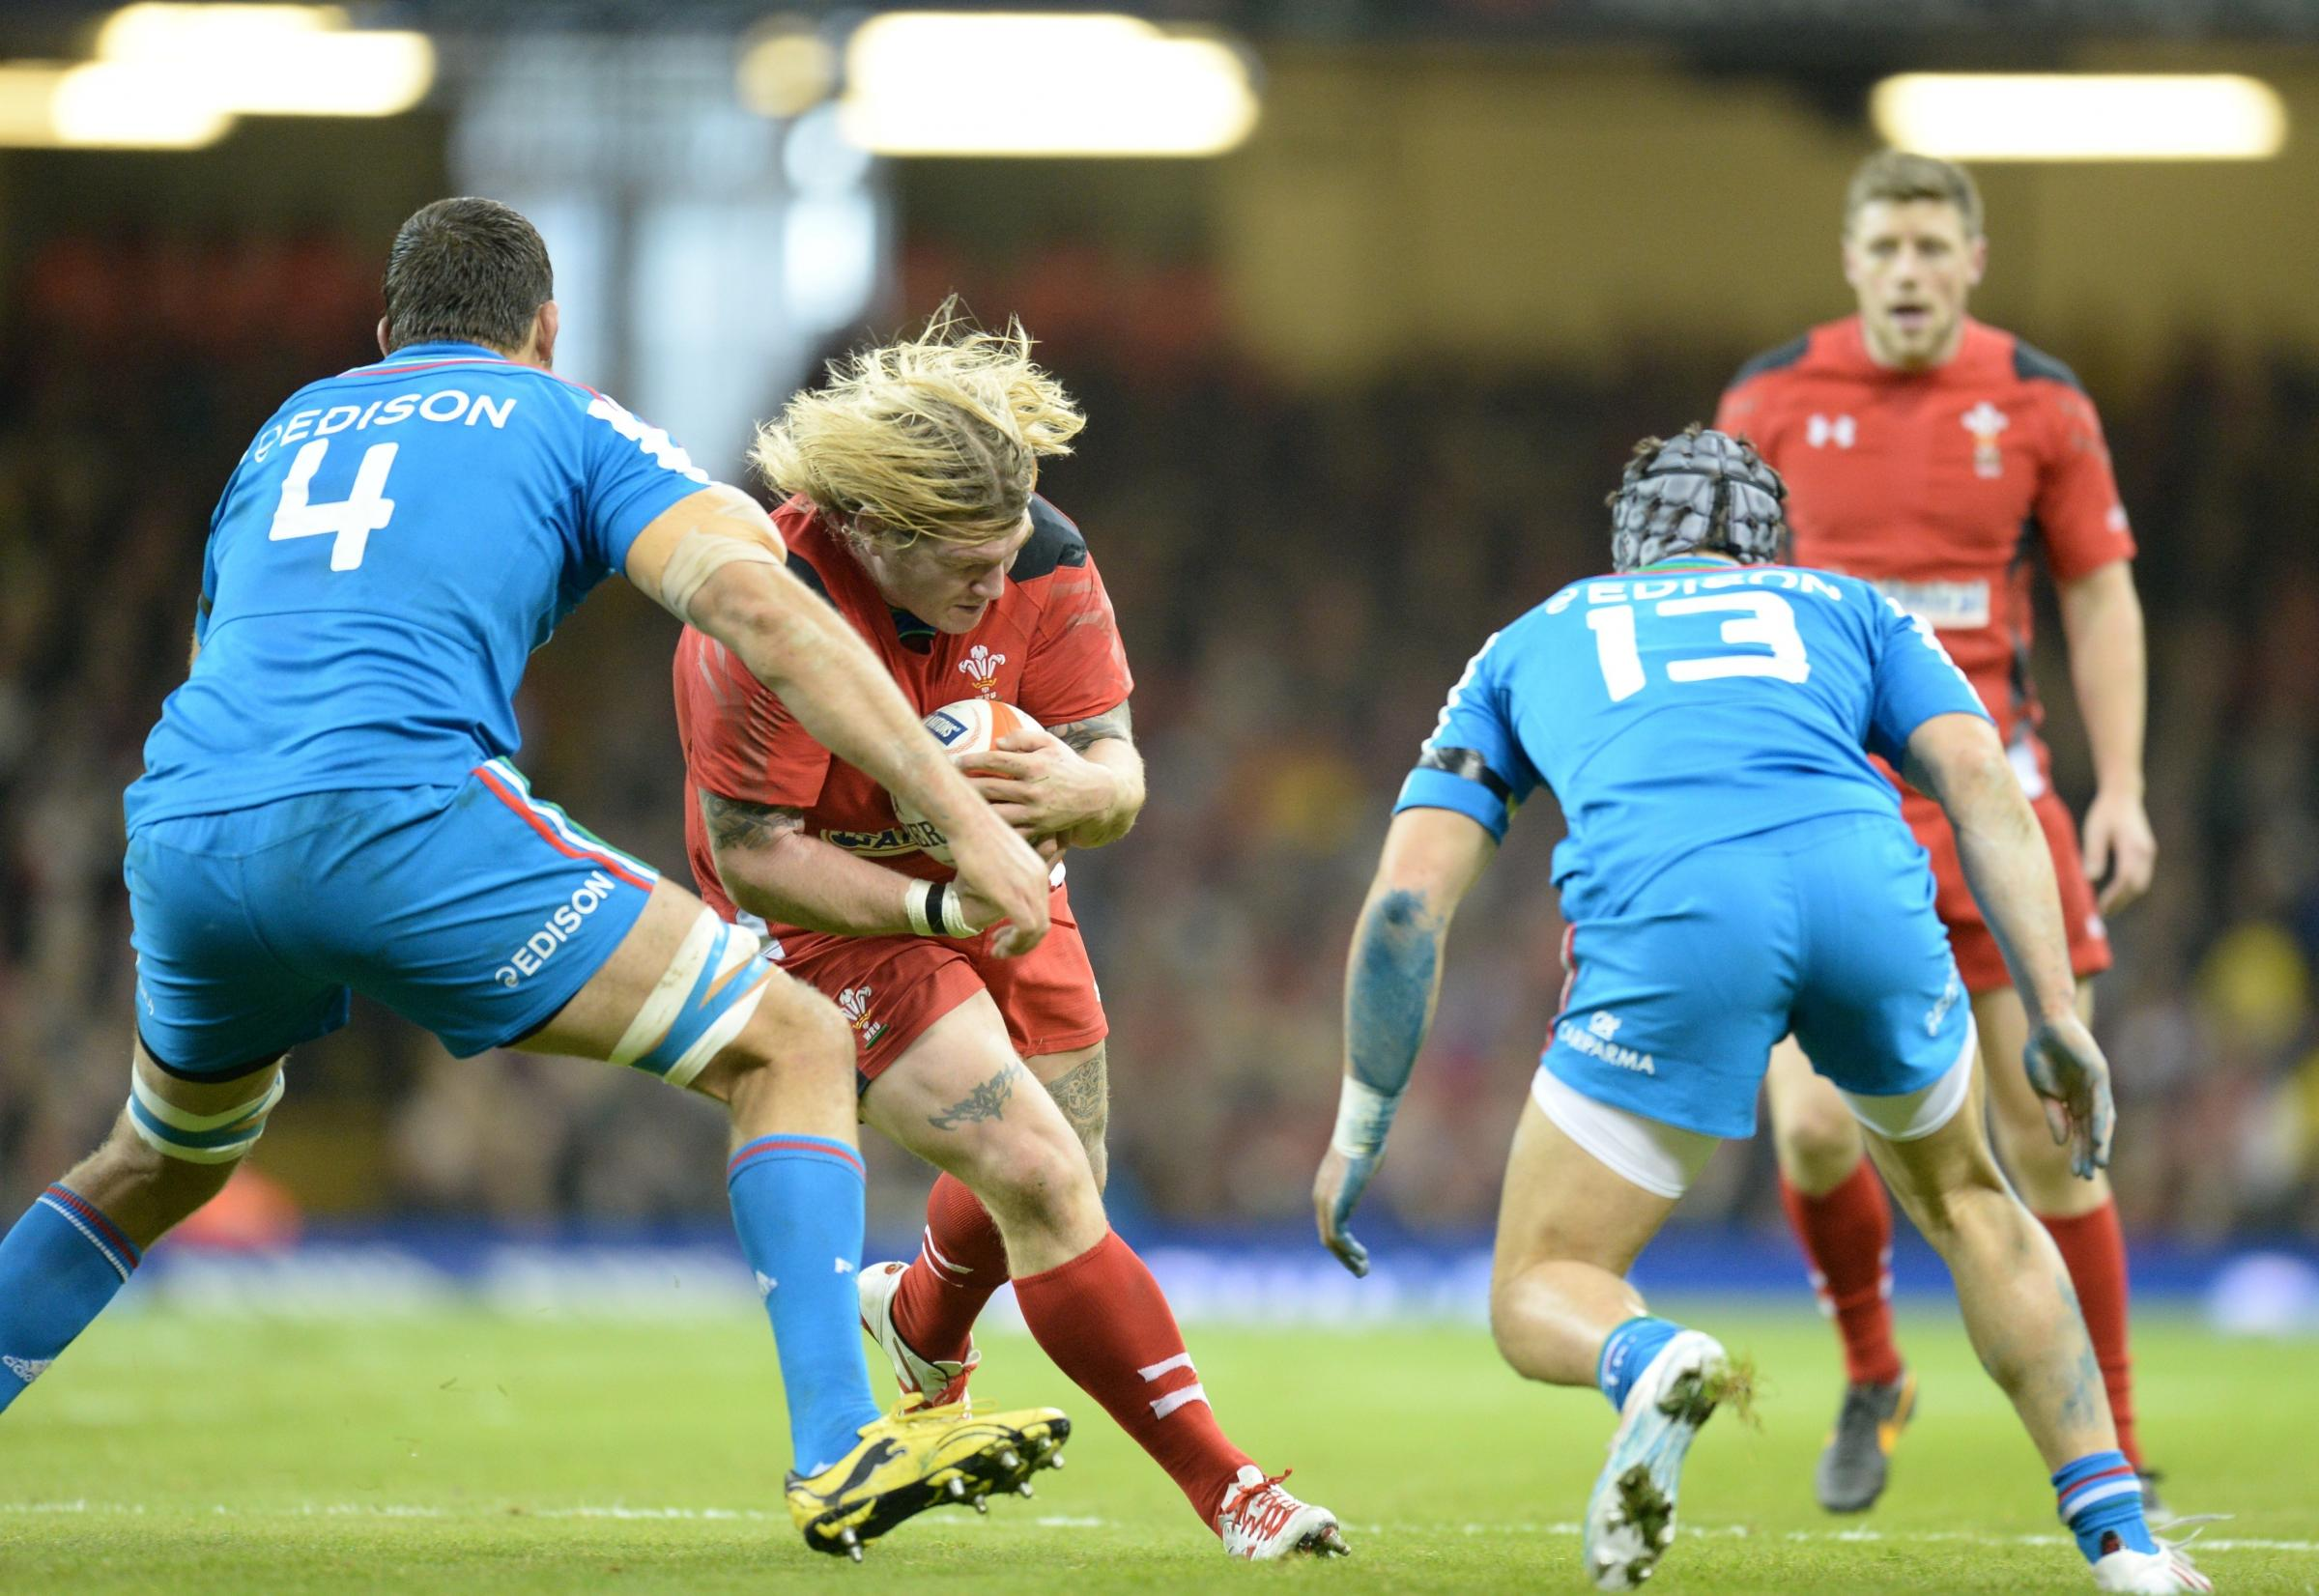 Bumps and bruises won't stop Wales hooker Richard Hibbard's brutal approach